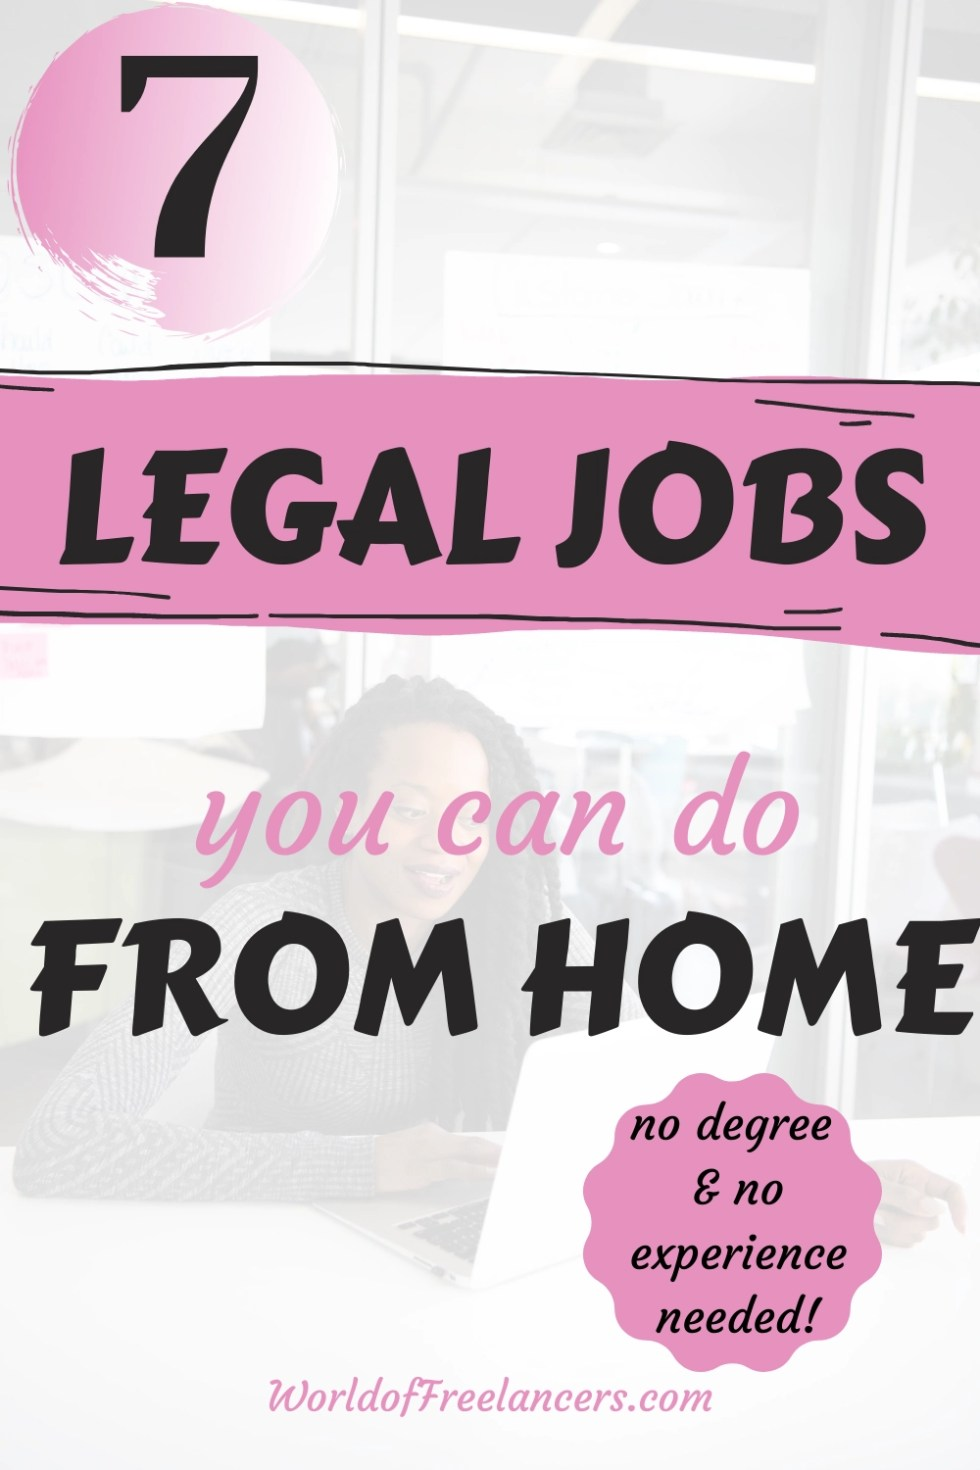 7 legal jobs you can do from home - no degree and no experience necessary